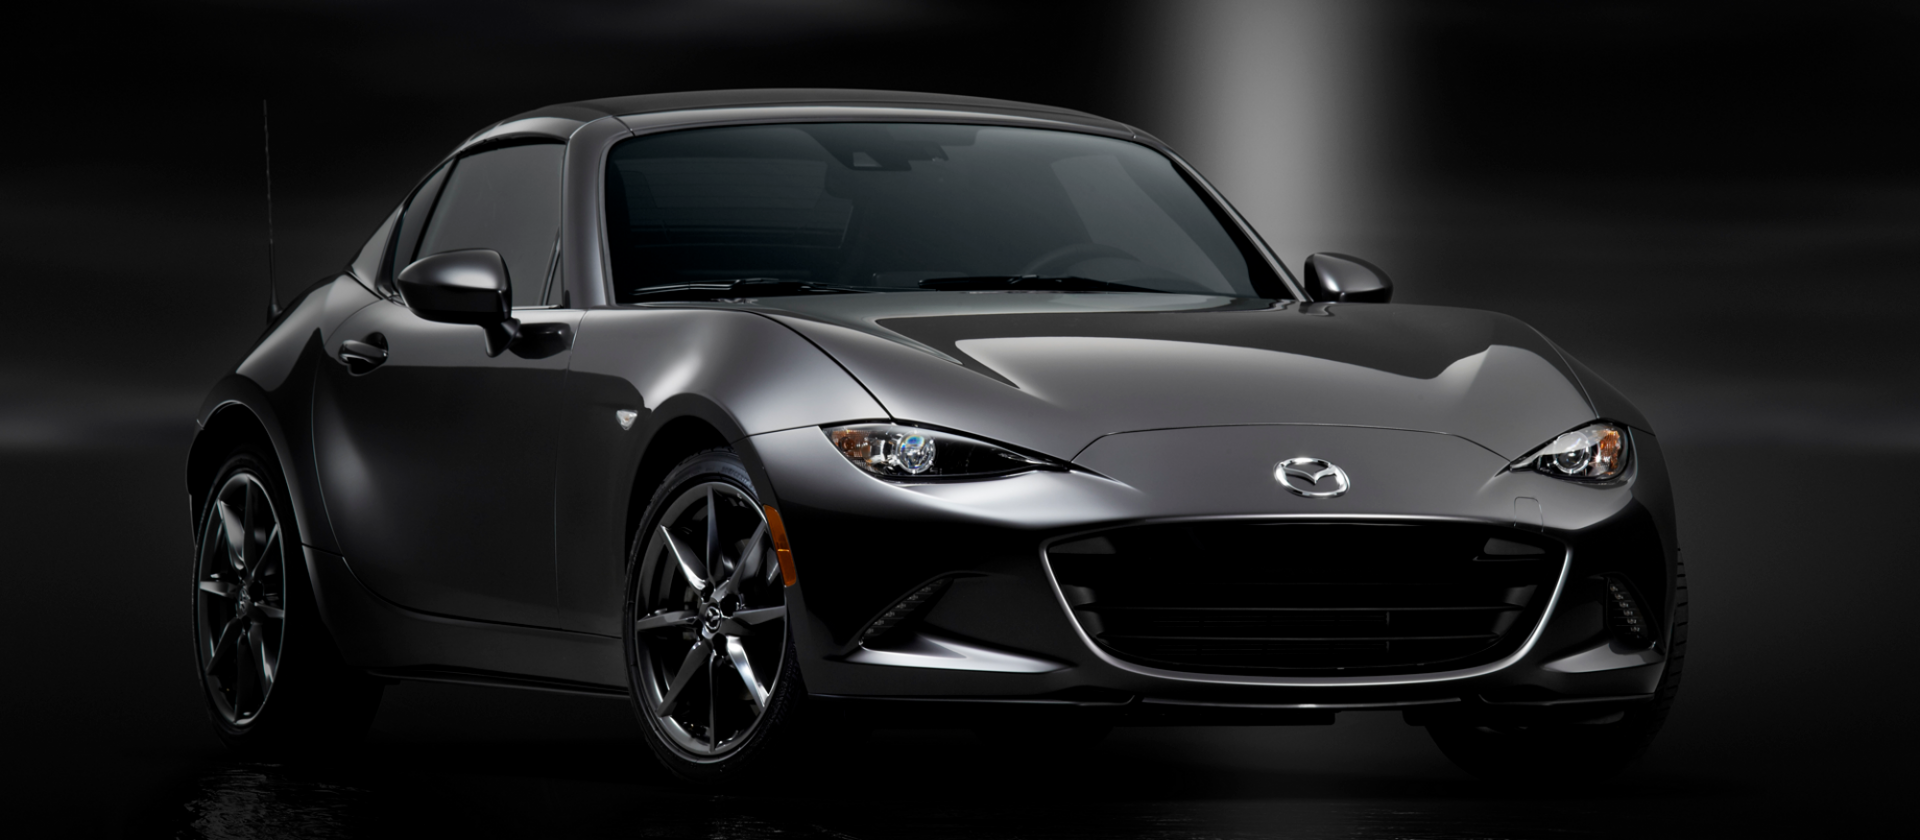 16mazda_mx-5rf_showmodel_fq_close_black